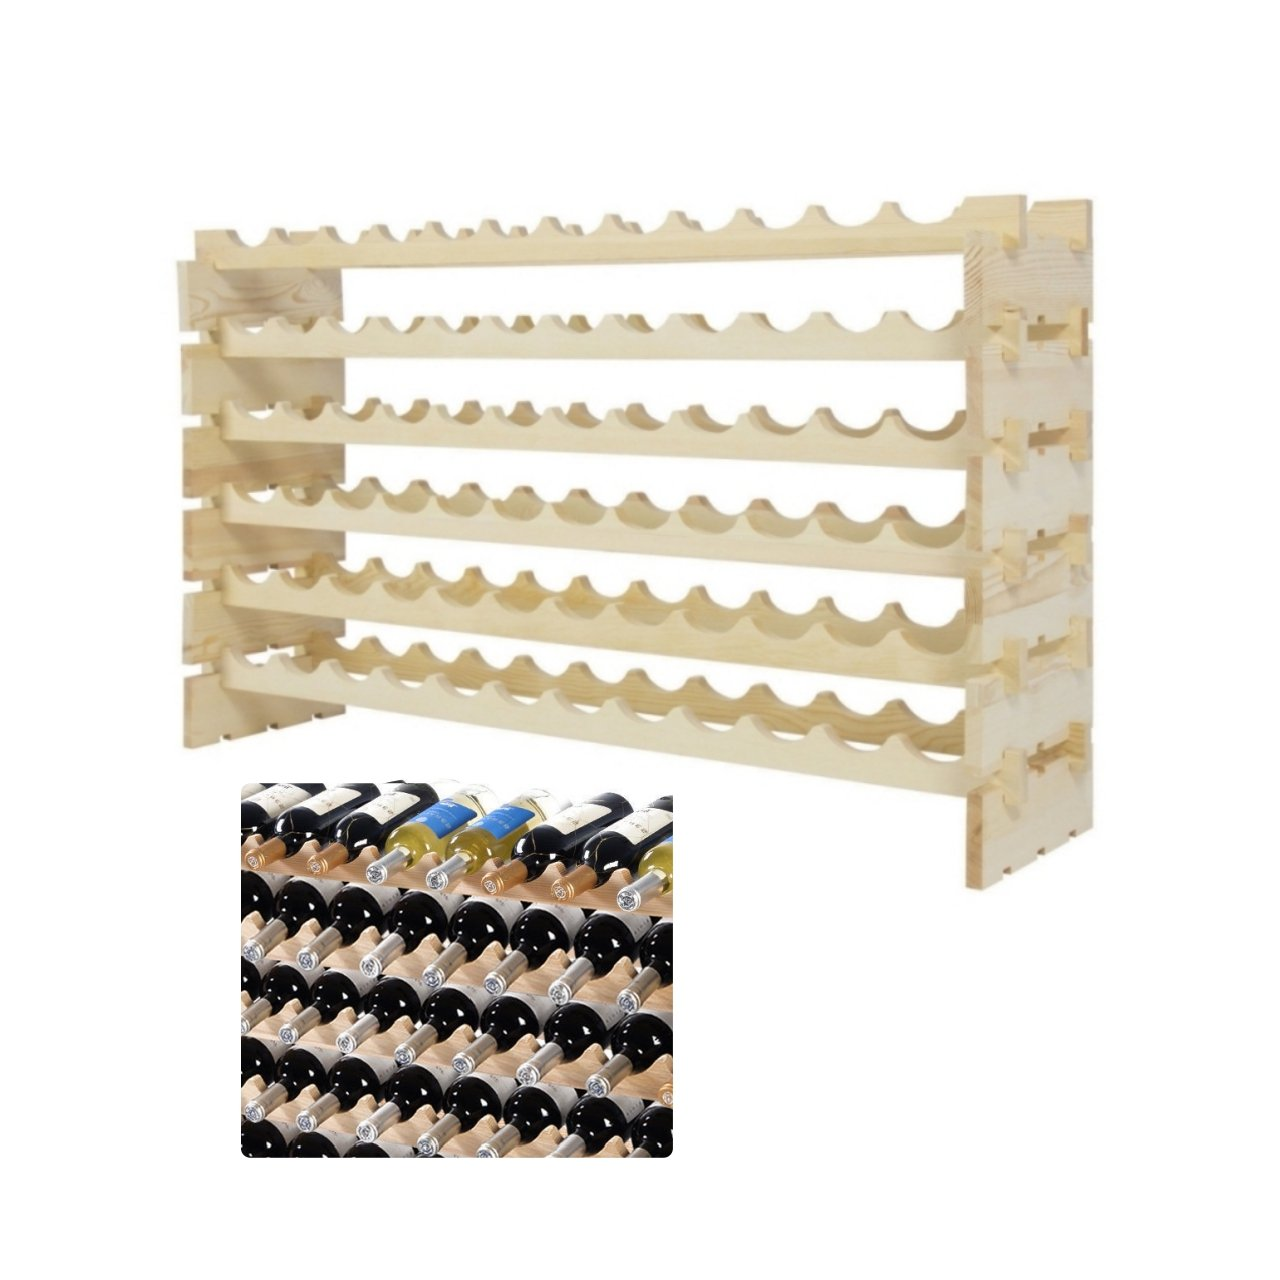 Pine Wood Wine Rack 72 Bottle Holder Stackable 6 Tier Storage Dining Room Kitchen Home Display Space-Efficient Storage Solid Construction Natural Finish #1802